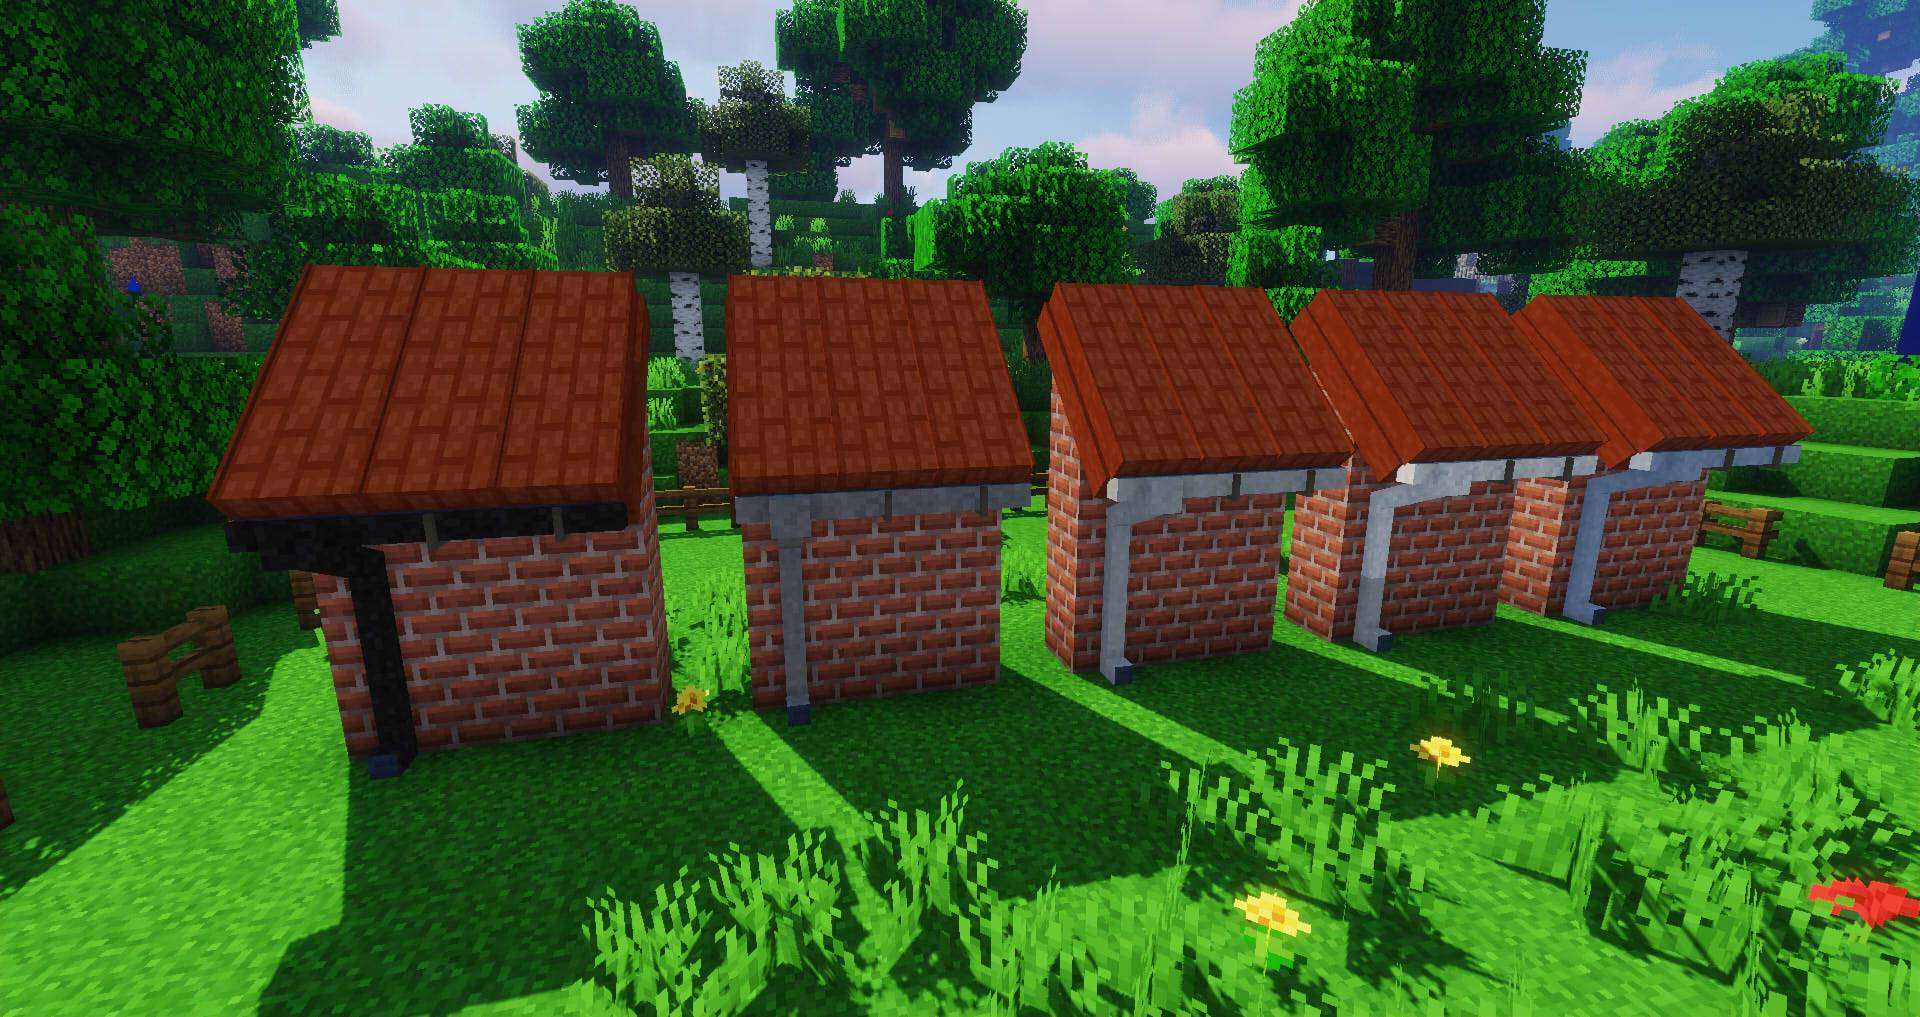 Macaw_s Roofs mod for minecraft 26